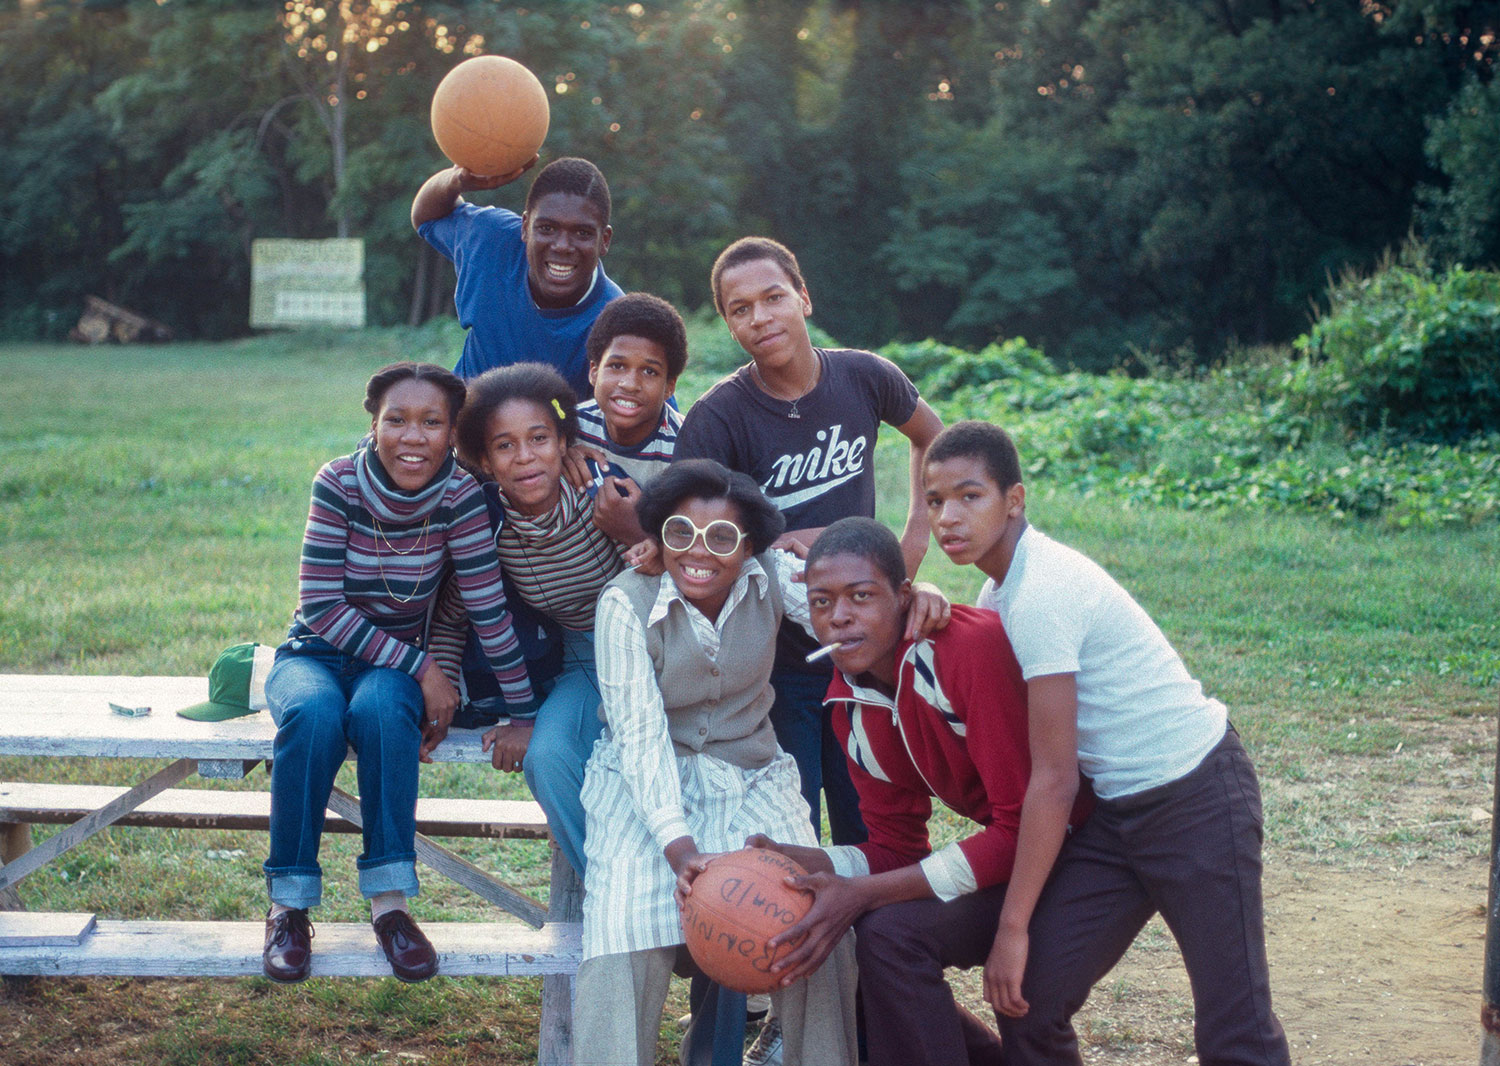 Basketball team members and fans 1979